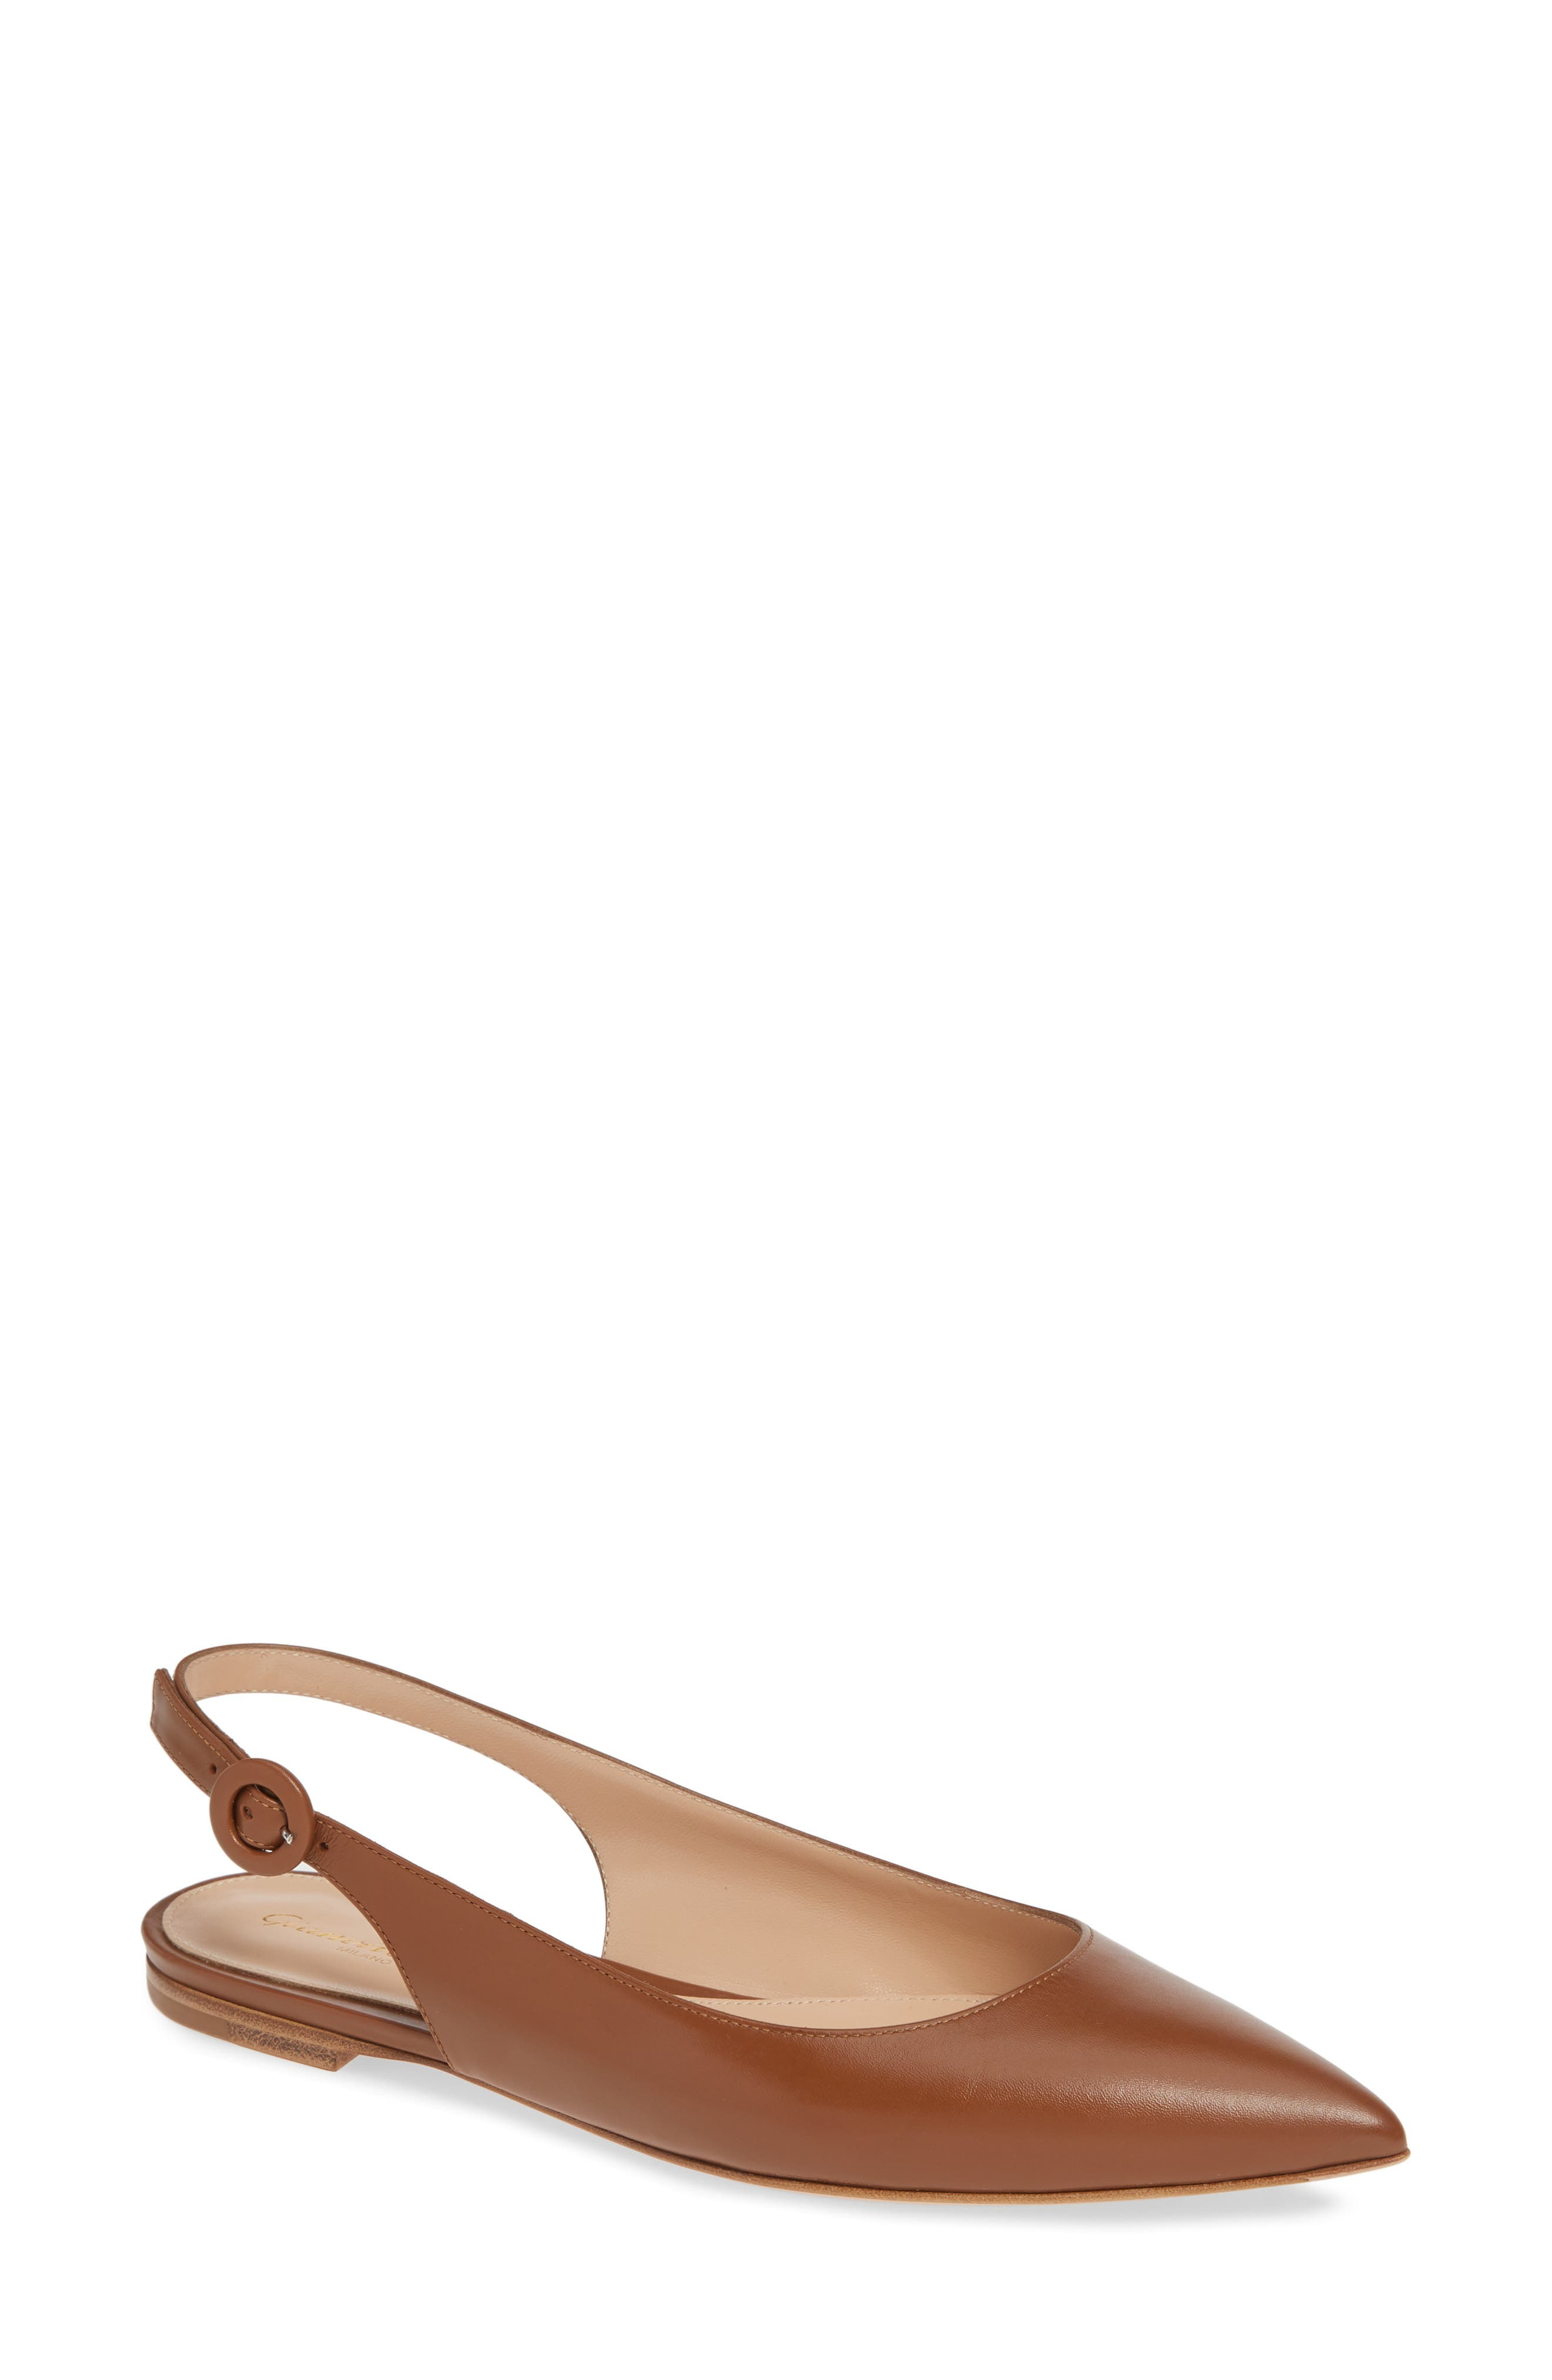 Gianvito Rossi Slingback Flat - Brown